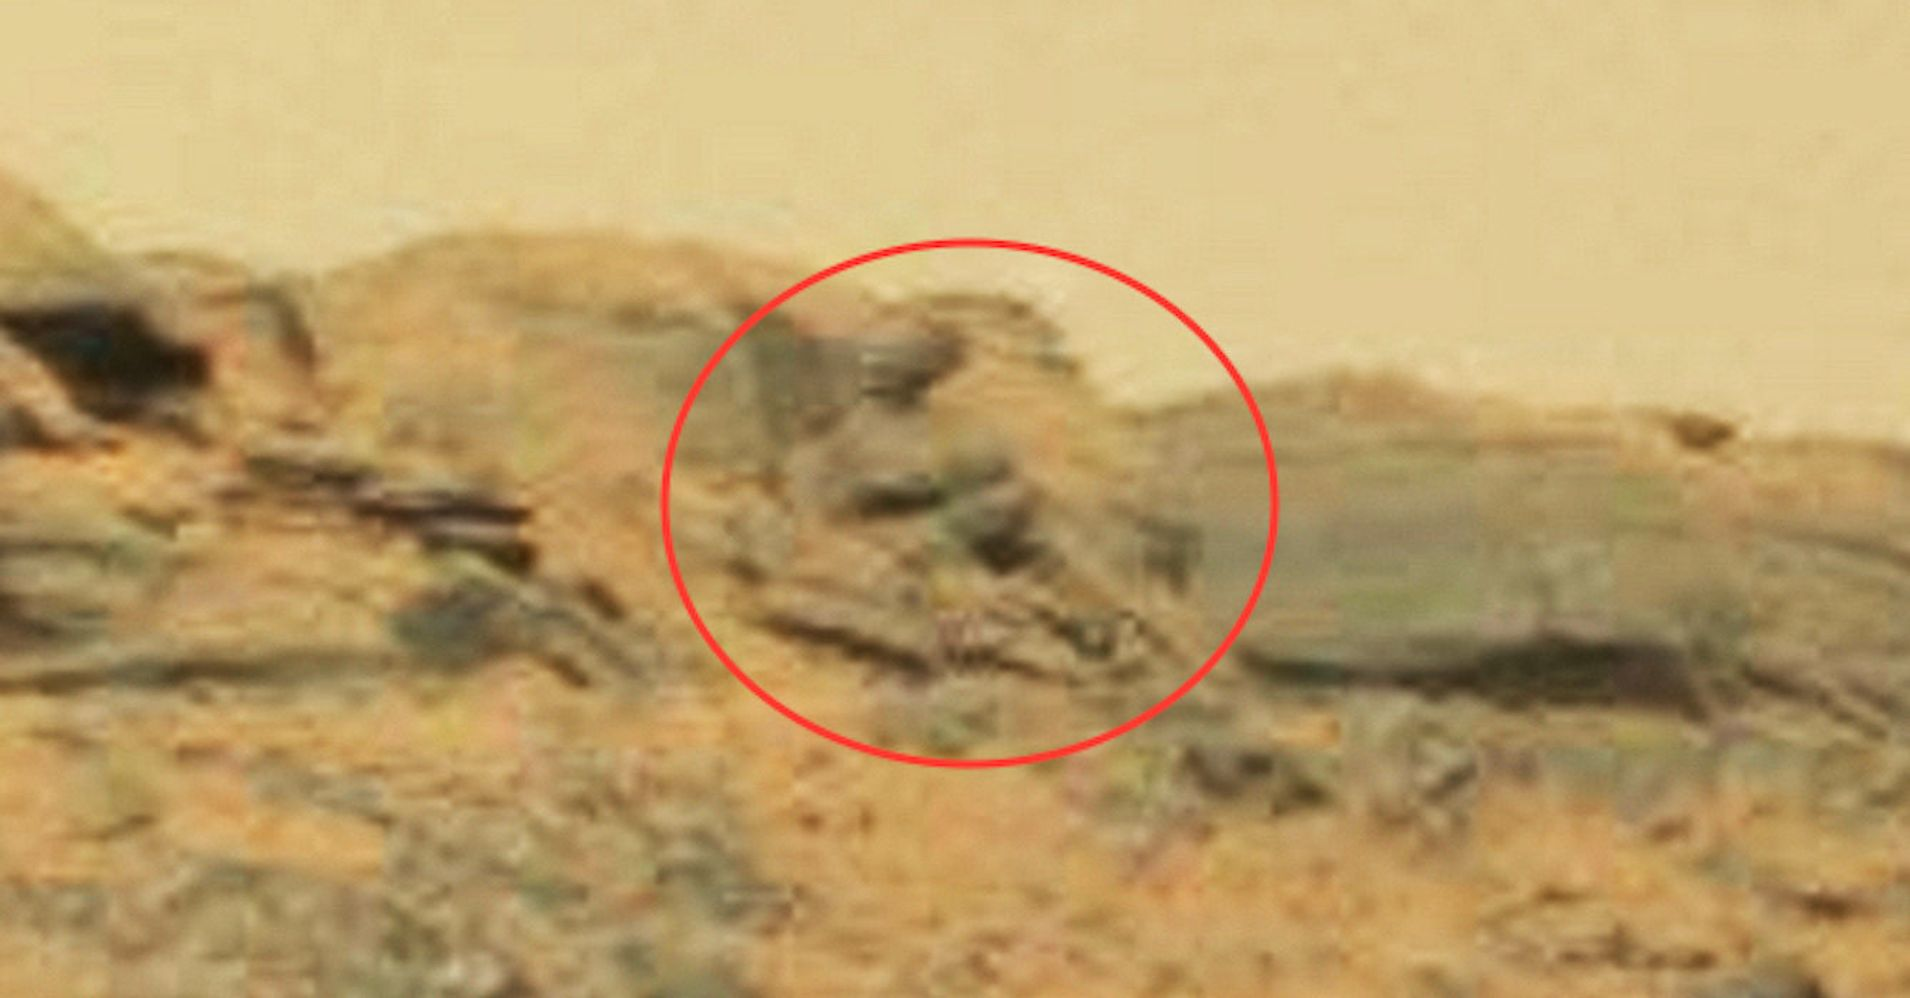 Buddha Statue (Or Rock Formation) Spotted On Mars | HuffPost